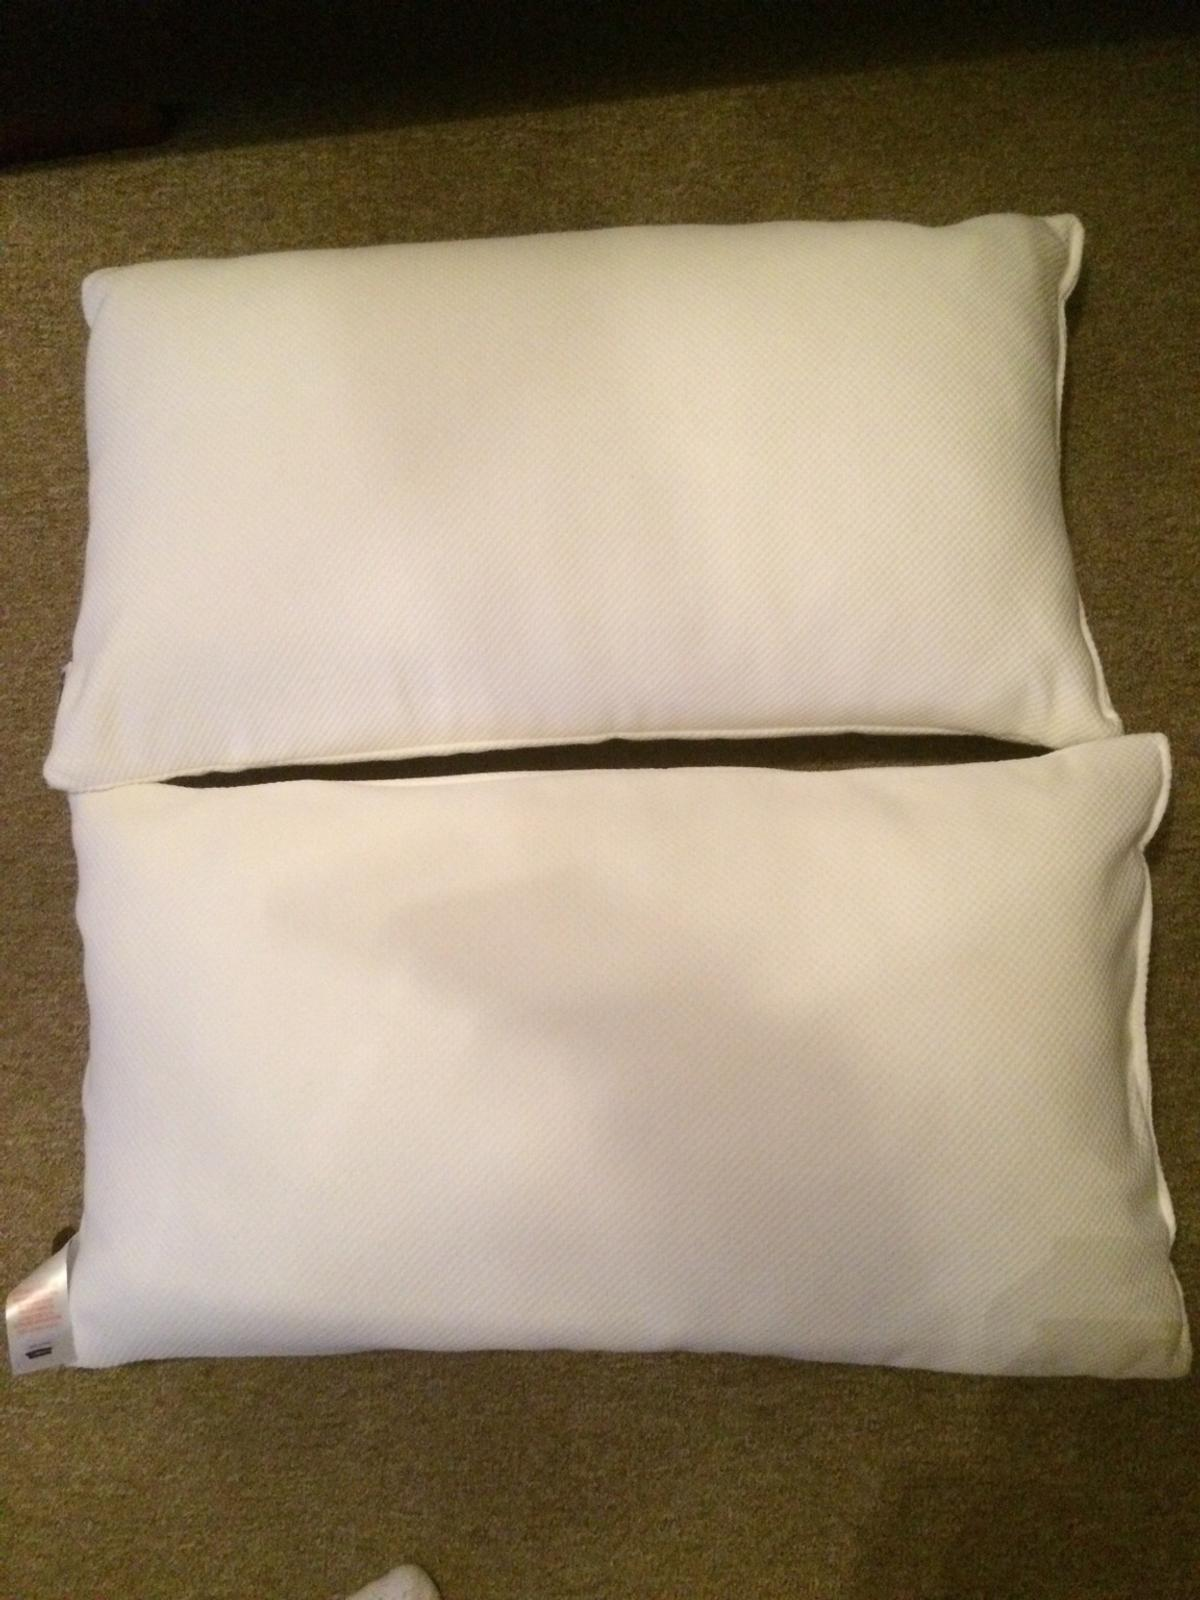 memory foam pillows & pillow protectors